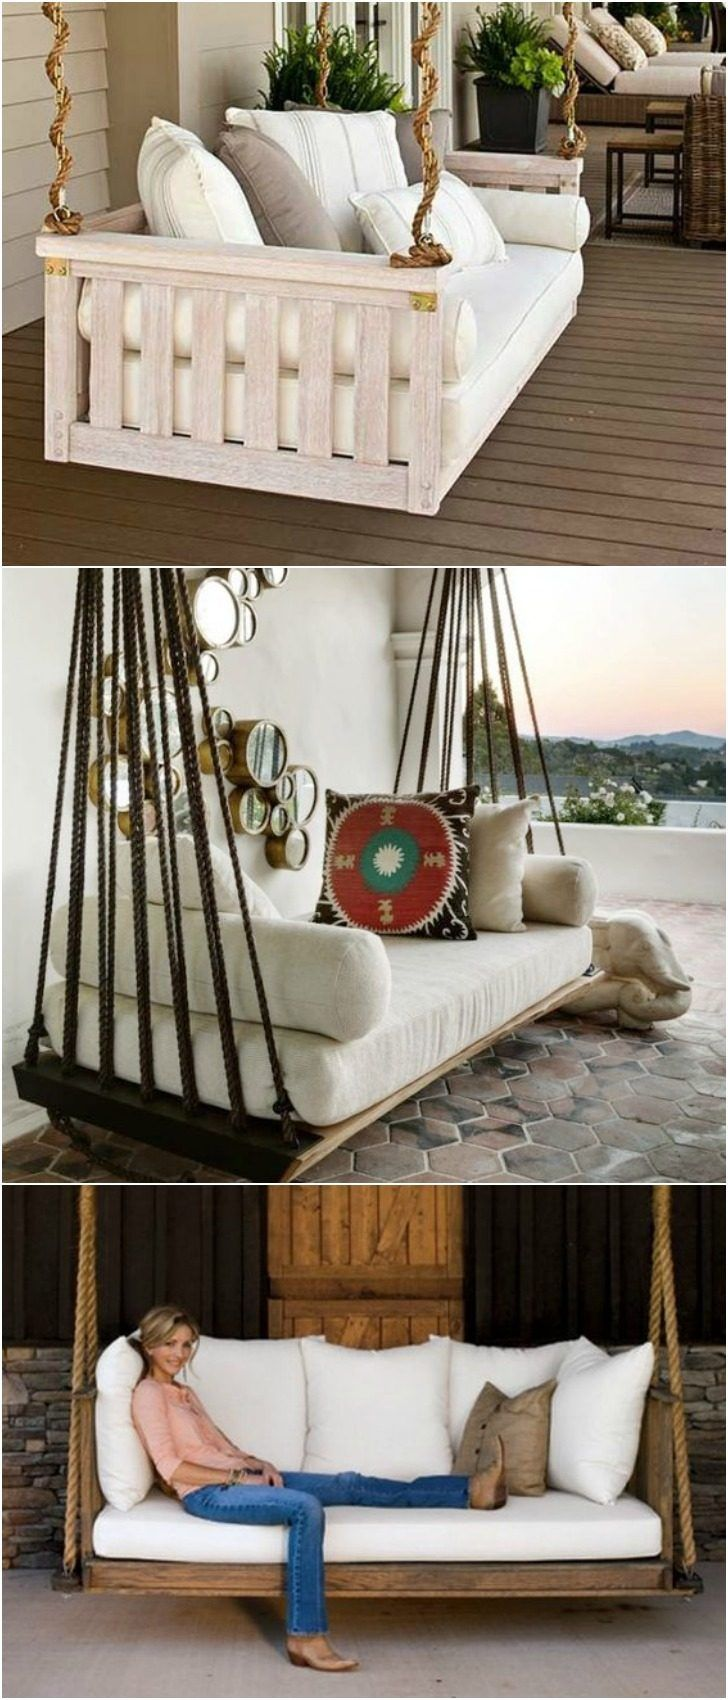 7 DIY Outdoor Swings Thatu0027ll Make Warm Nights Even Better. #6 Is Just  Stunning